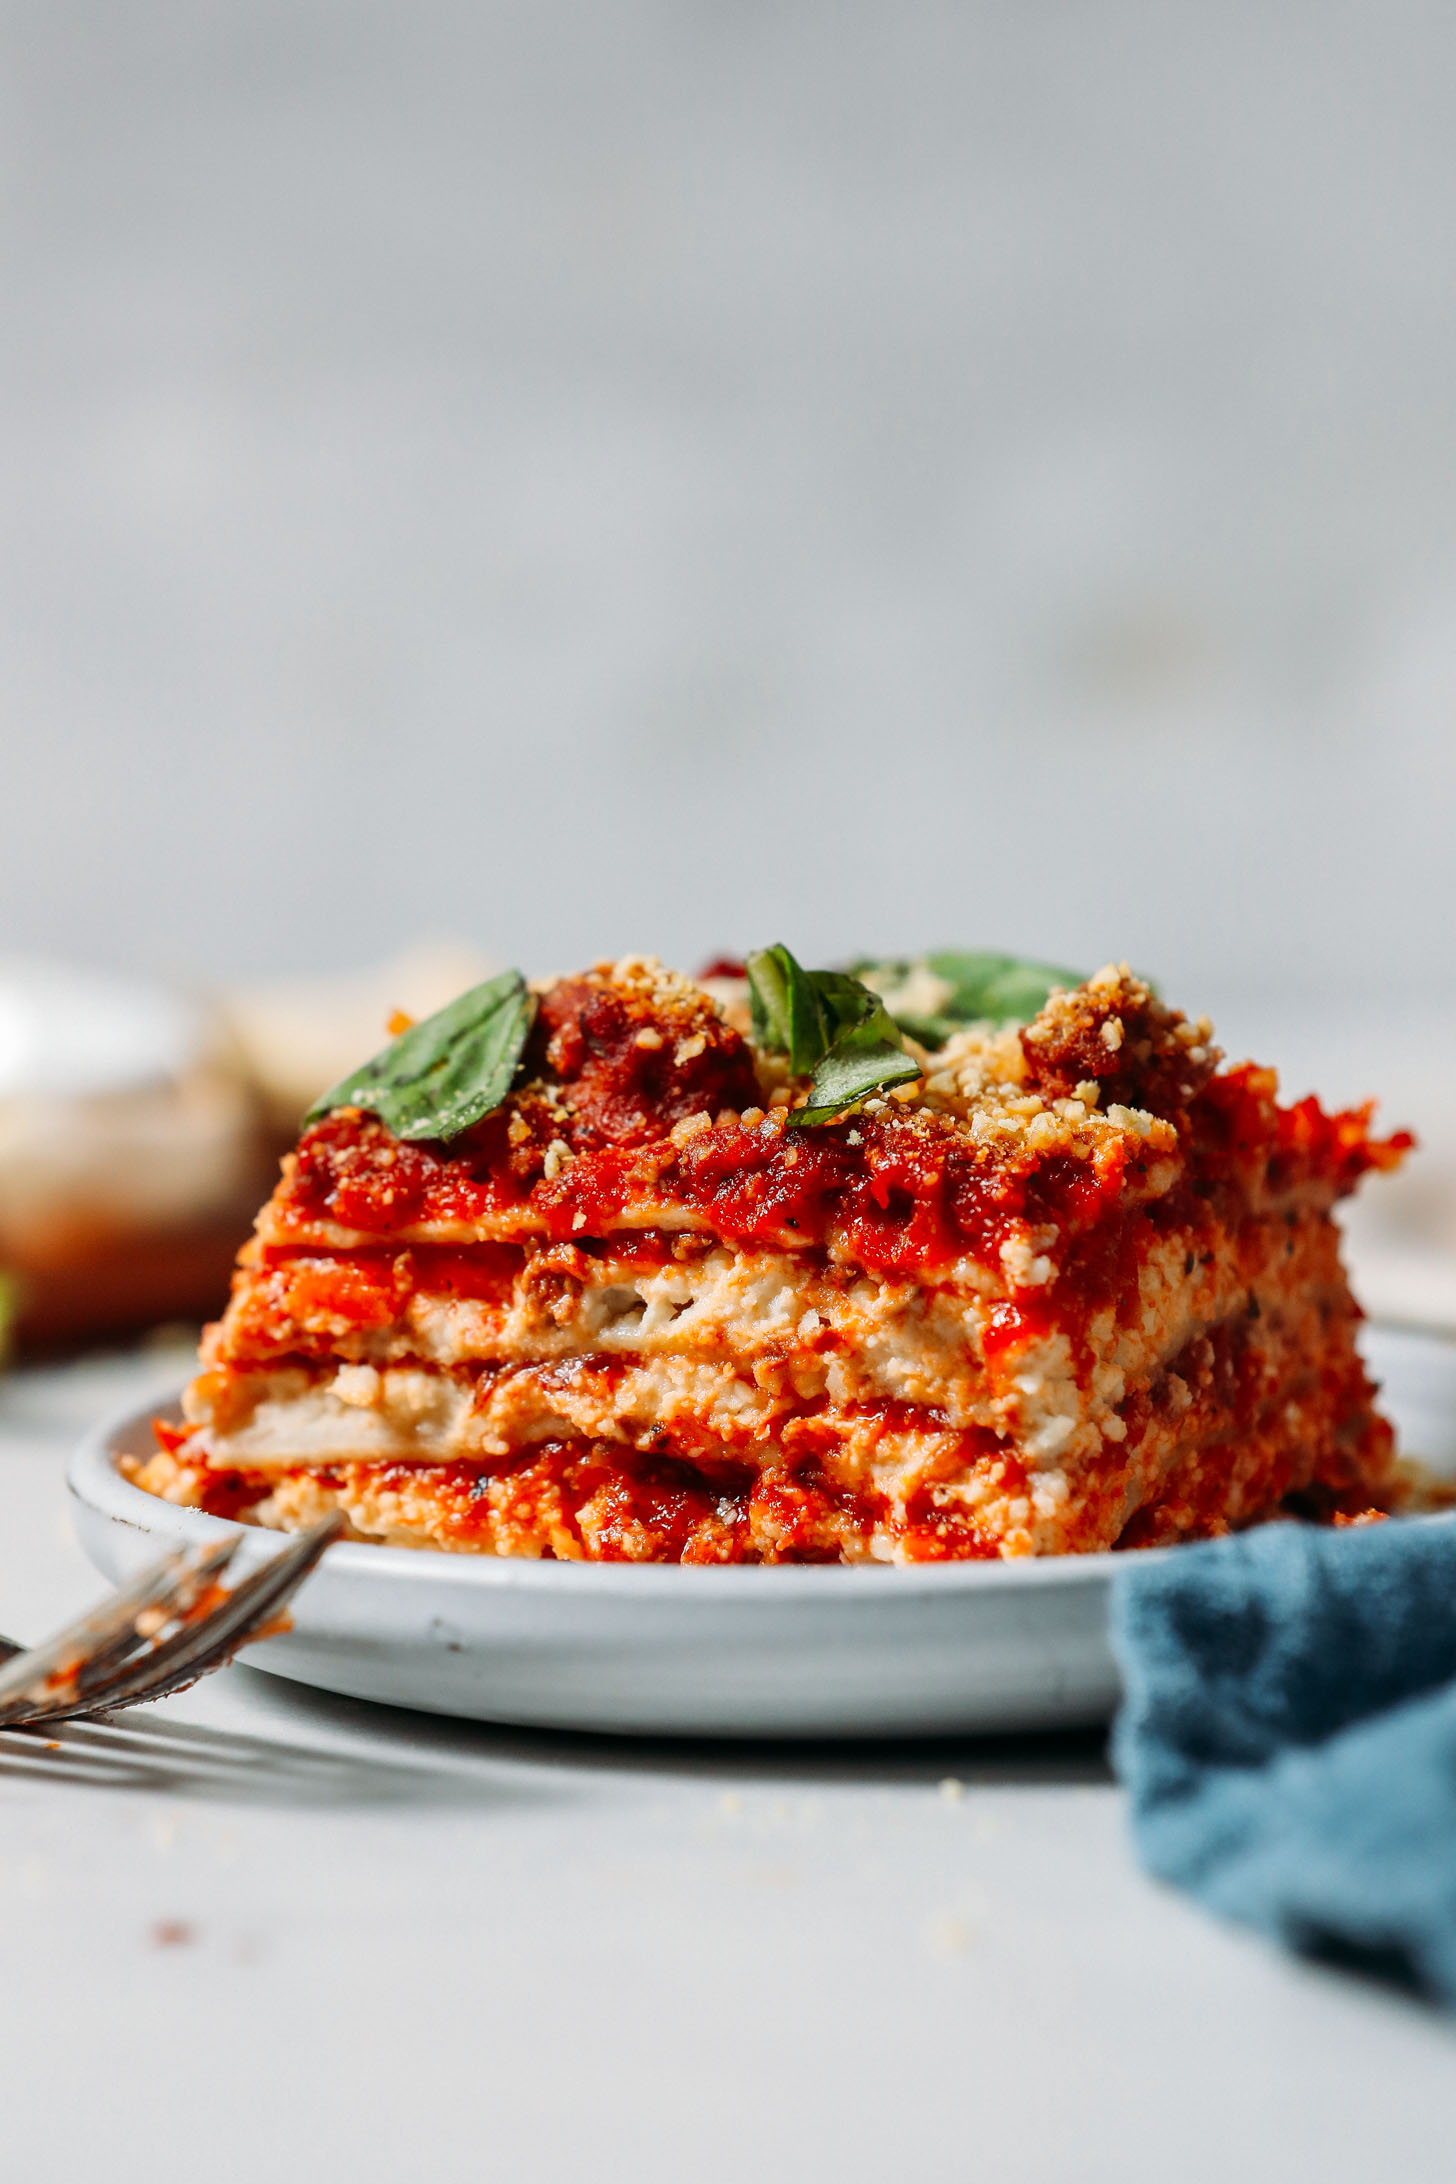 Side view of a slice of Dairy-Free Gluten-Free Lasagna topped with vegan parmesan and fresh basil